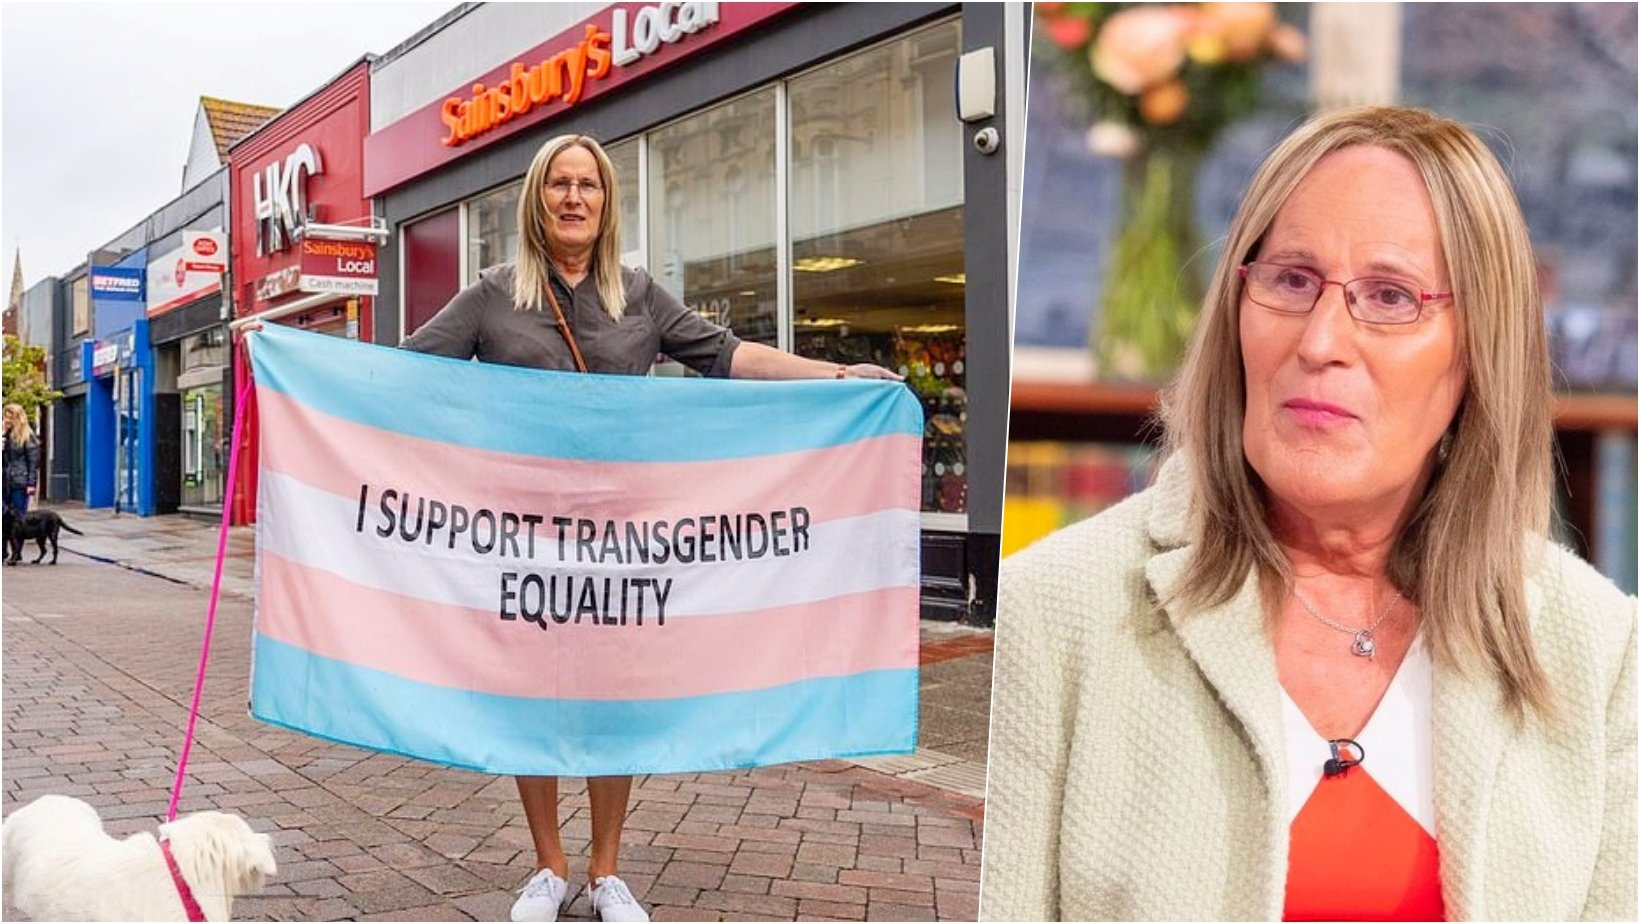 6 facebook cover 21.jpg?resize=1200,630 - Transgender Woman Sues Supermarket For Harassment After A Store Worker Made Insulting Comments About Her